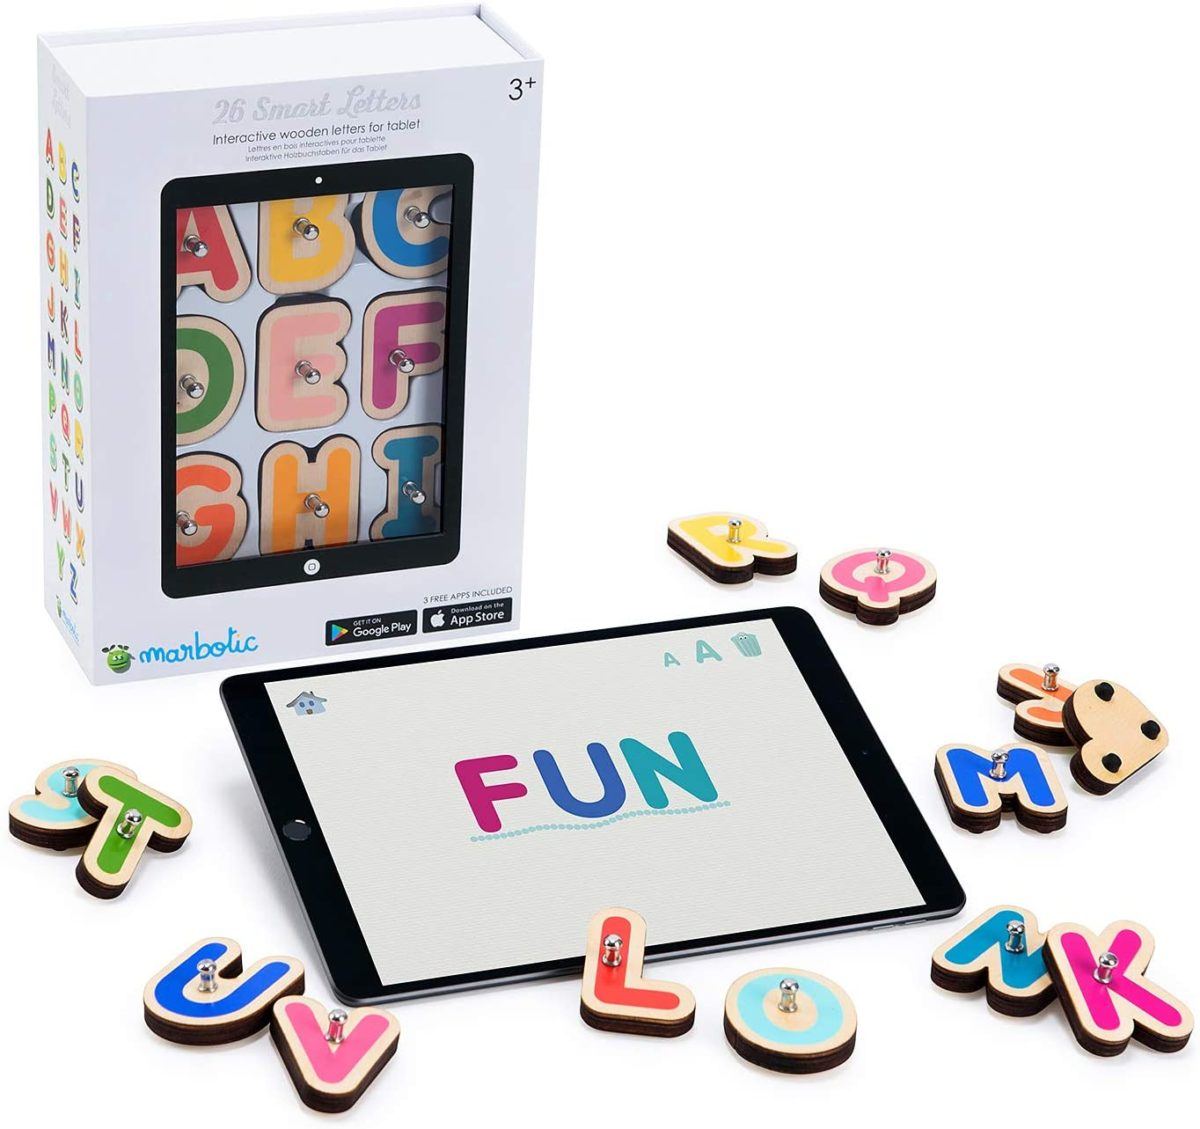 learning, creating, excitement, oh my! here are 32 of the best educational toys   32 toys that are the best of both worlds, educational and fun!